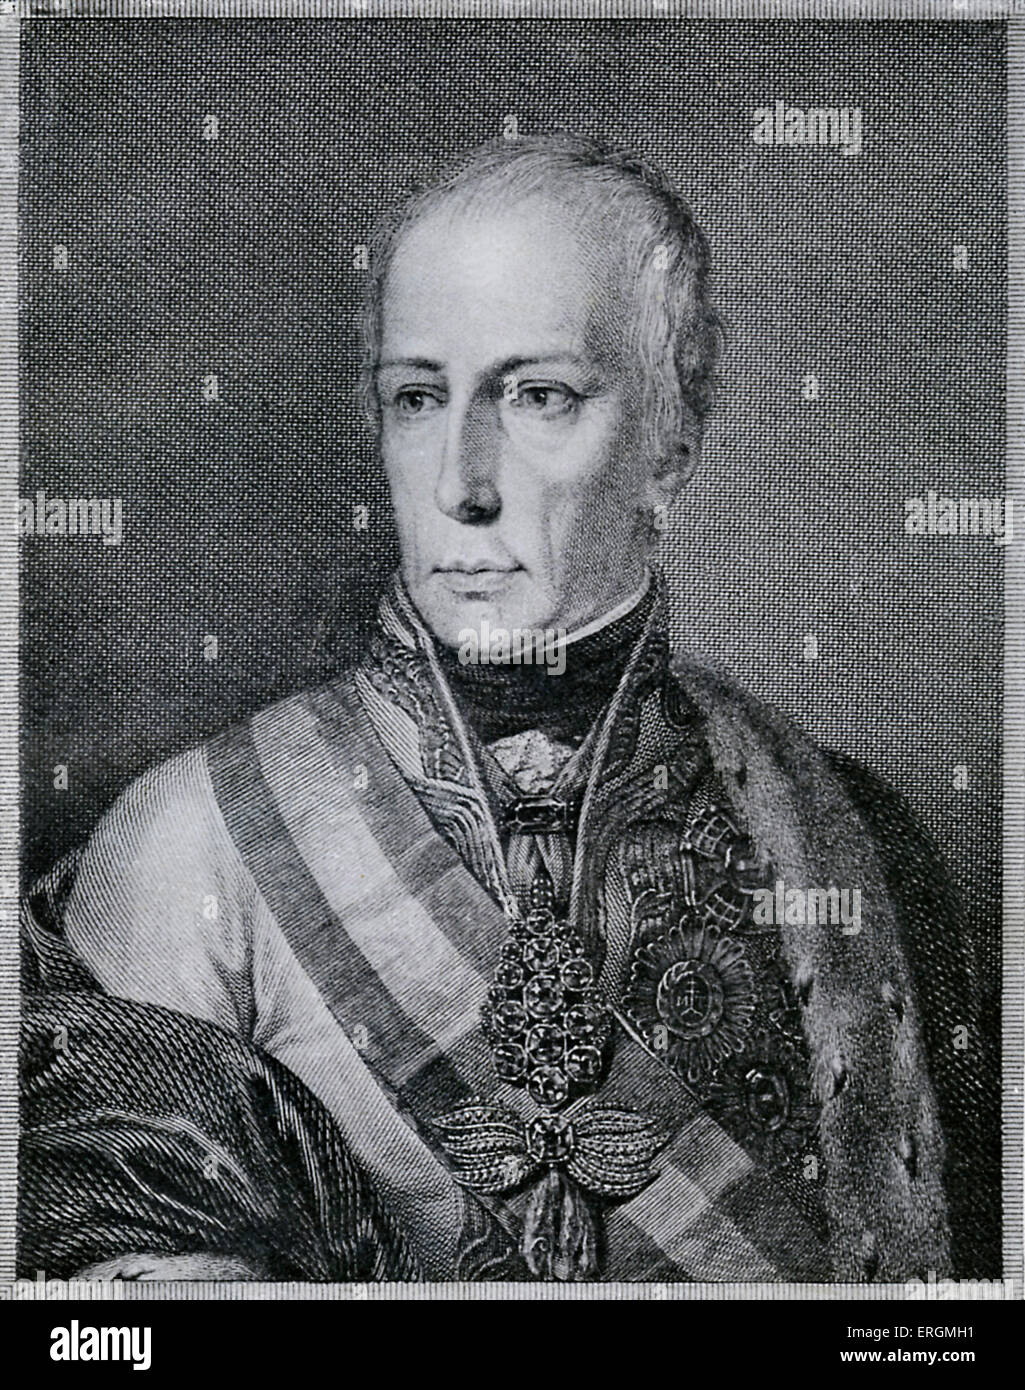 Kaiser Franz I (1768-1835) of Austria. Also known as Francis II of the Holy Roman Empire, Franz I founded the Austrian - Stock Image